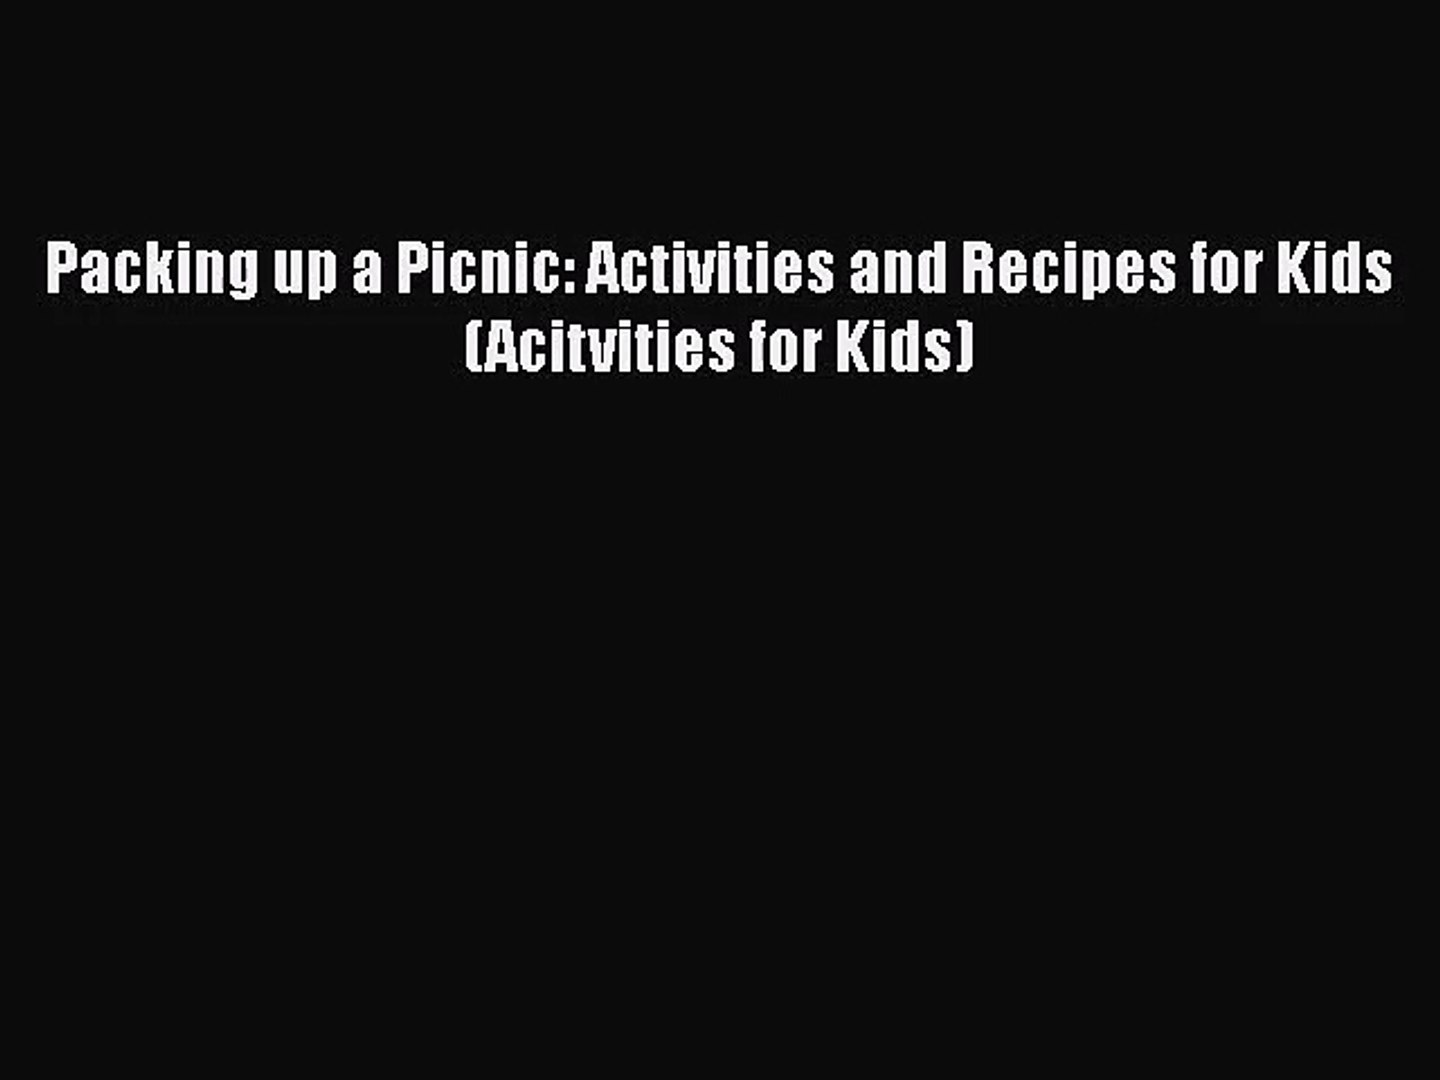 Packing up a Picnic: Activities and Recipes for Kids (Acitvities for Kids)  Free Books